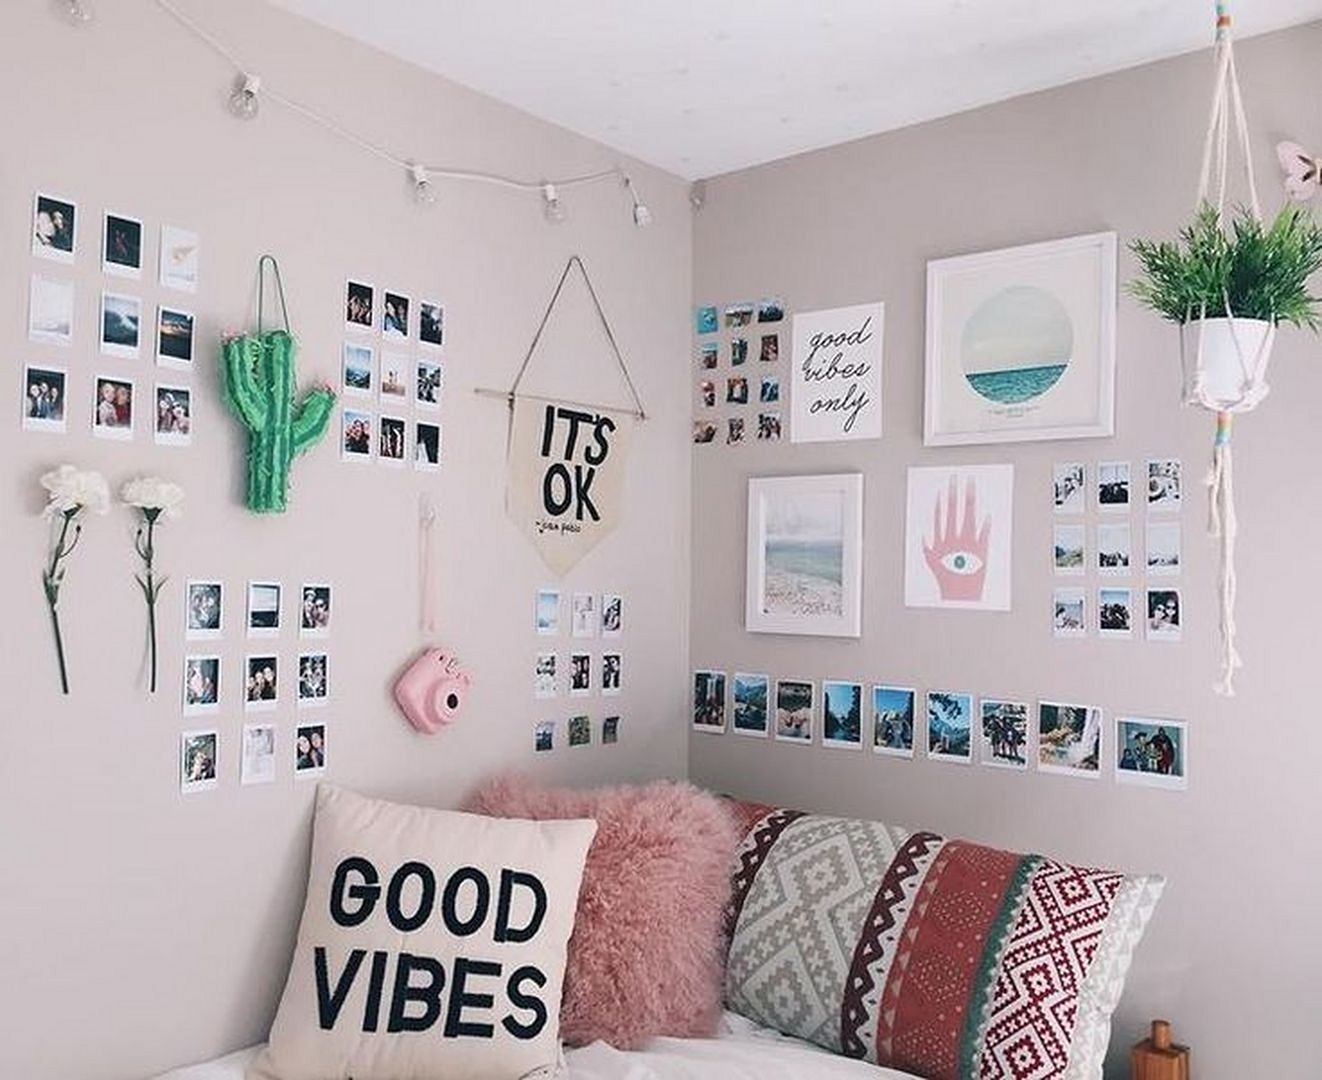 Creative Diy Wall Decoration Ideas In 2020 Dorm Room Decor Wall